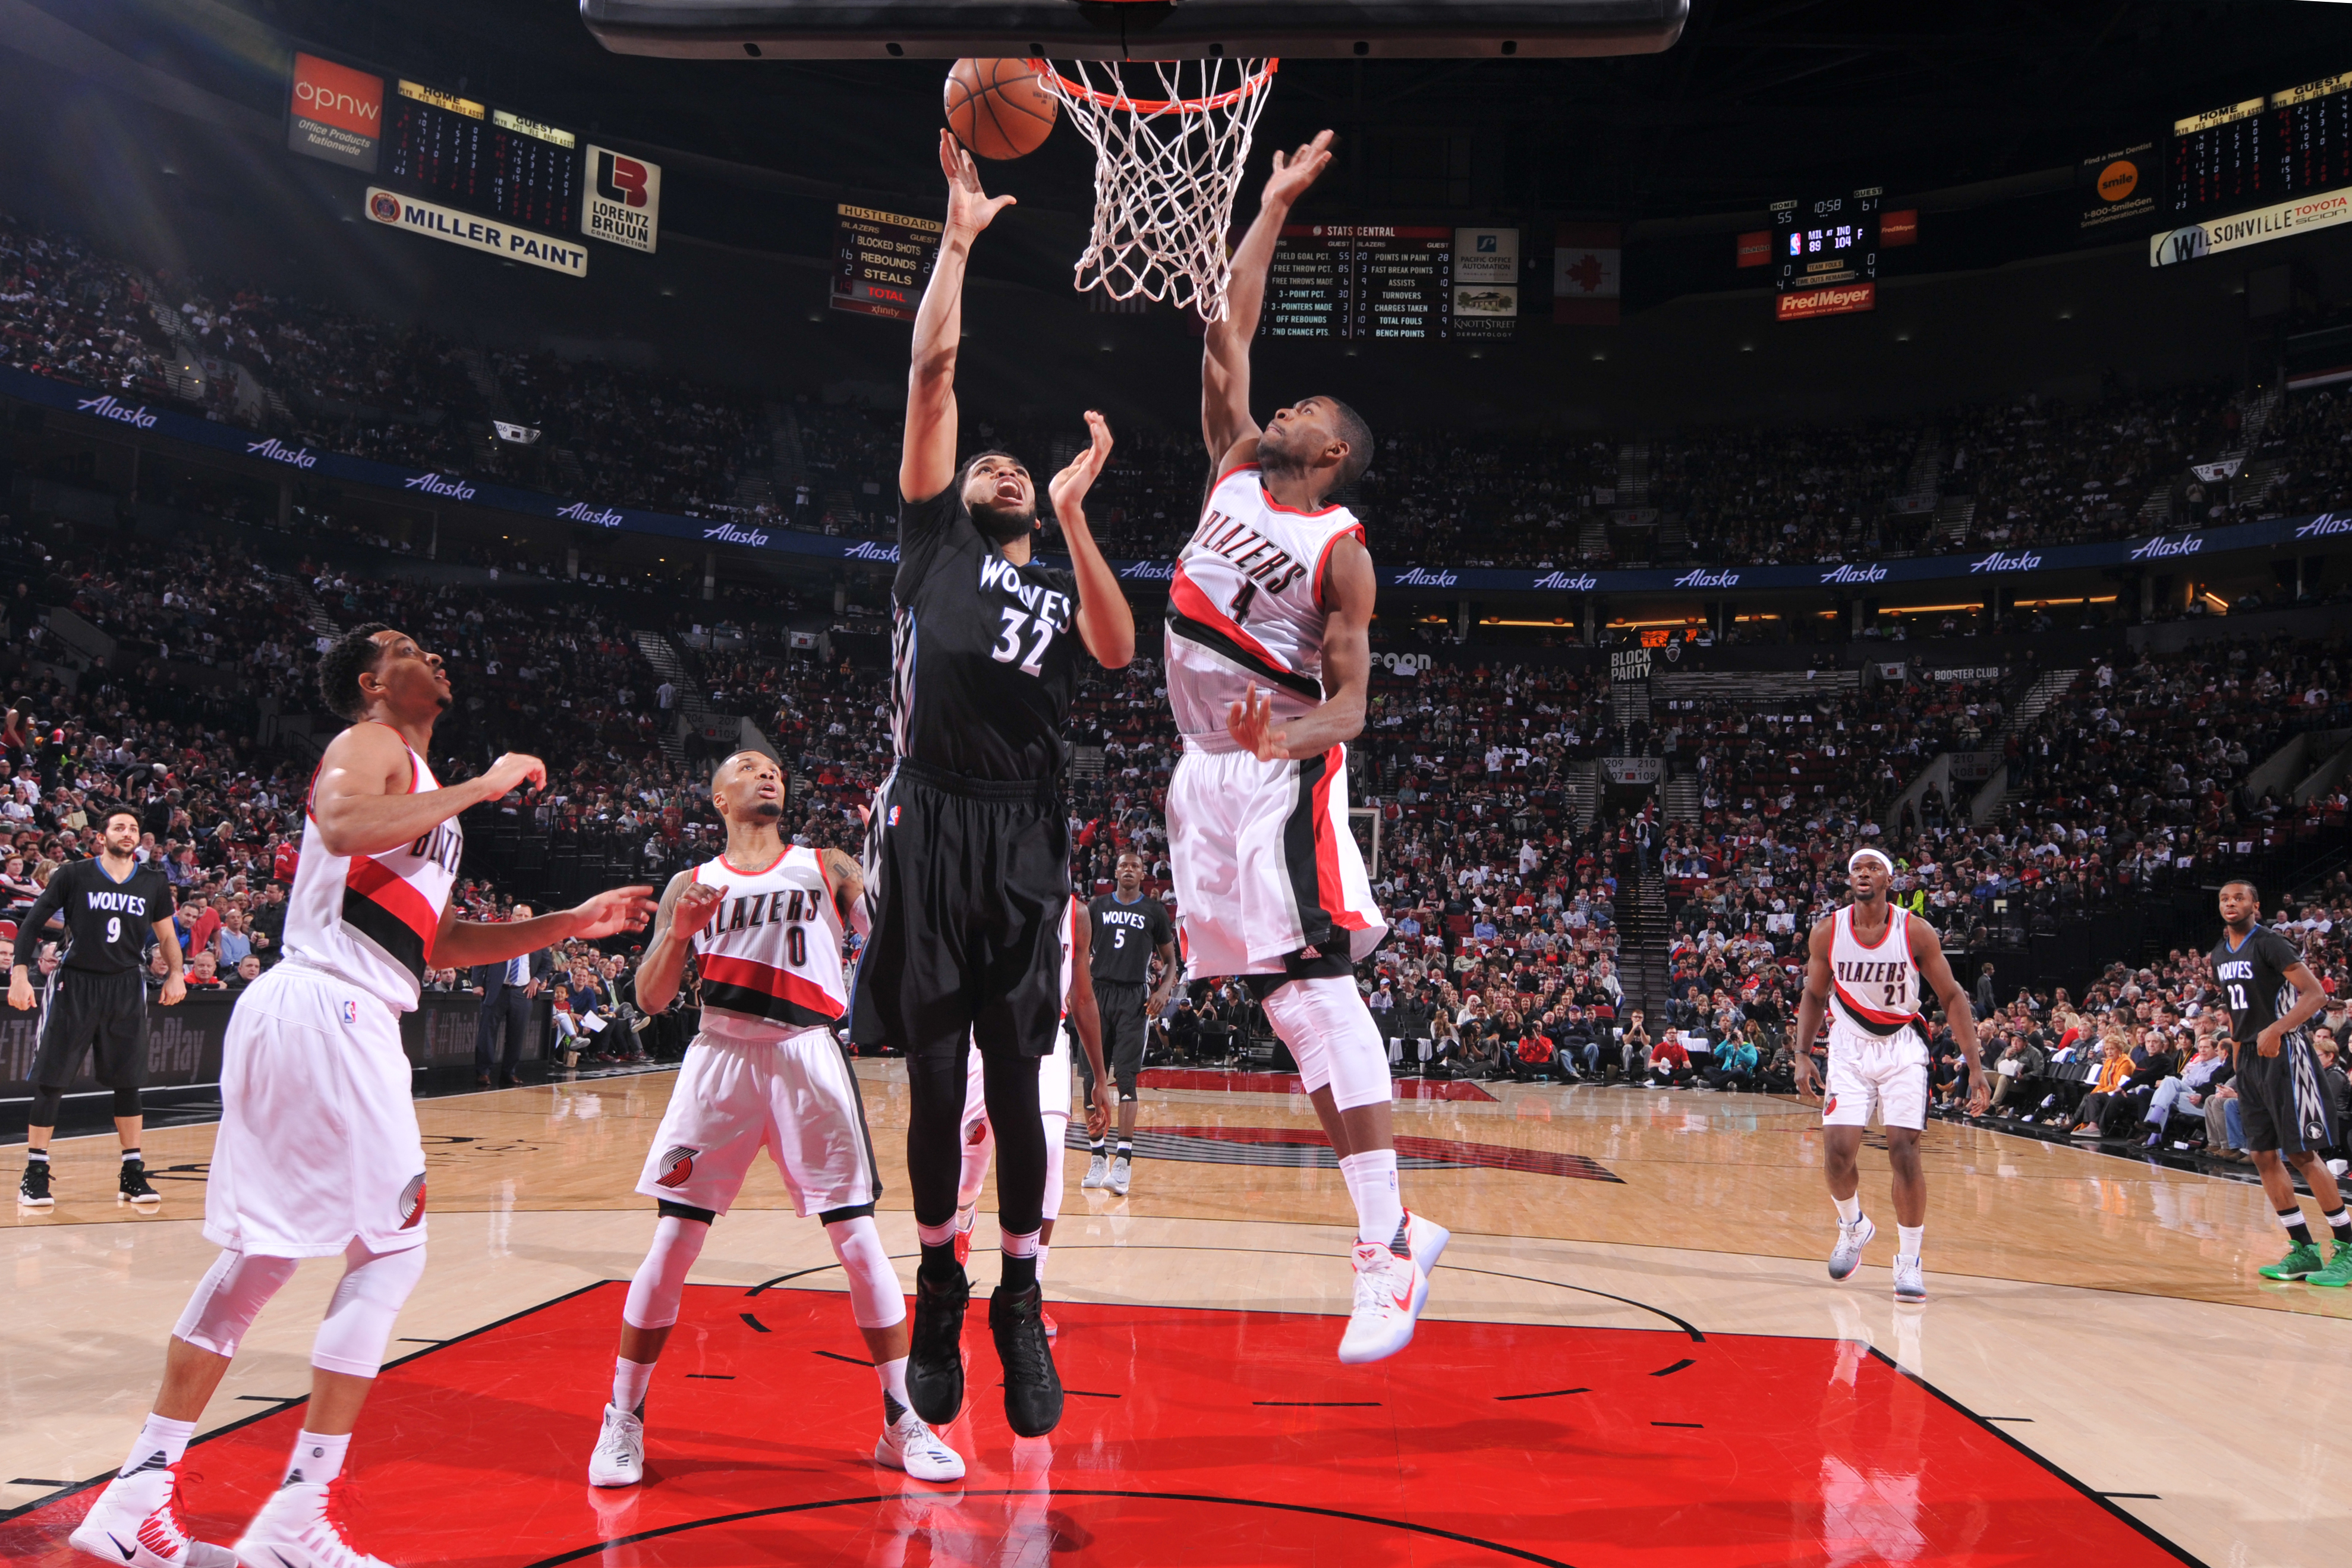 Wolves grind out one-point win over Blazers to close out homestand